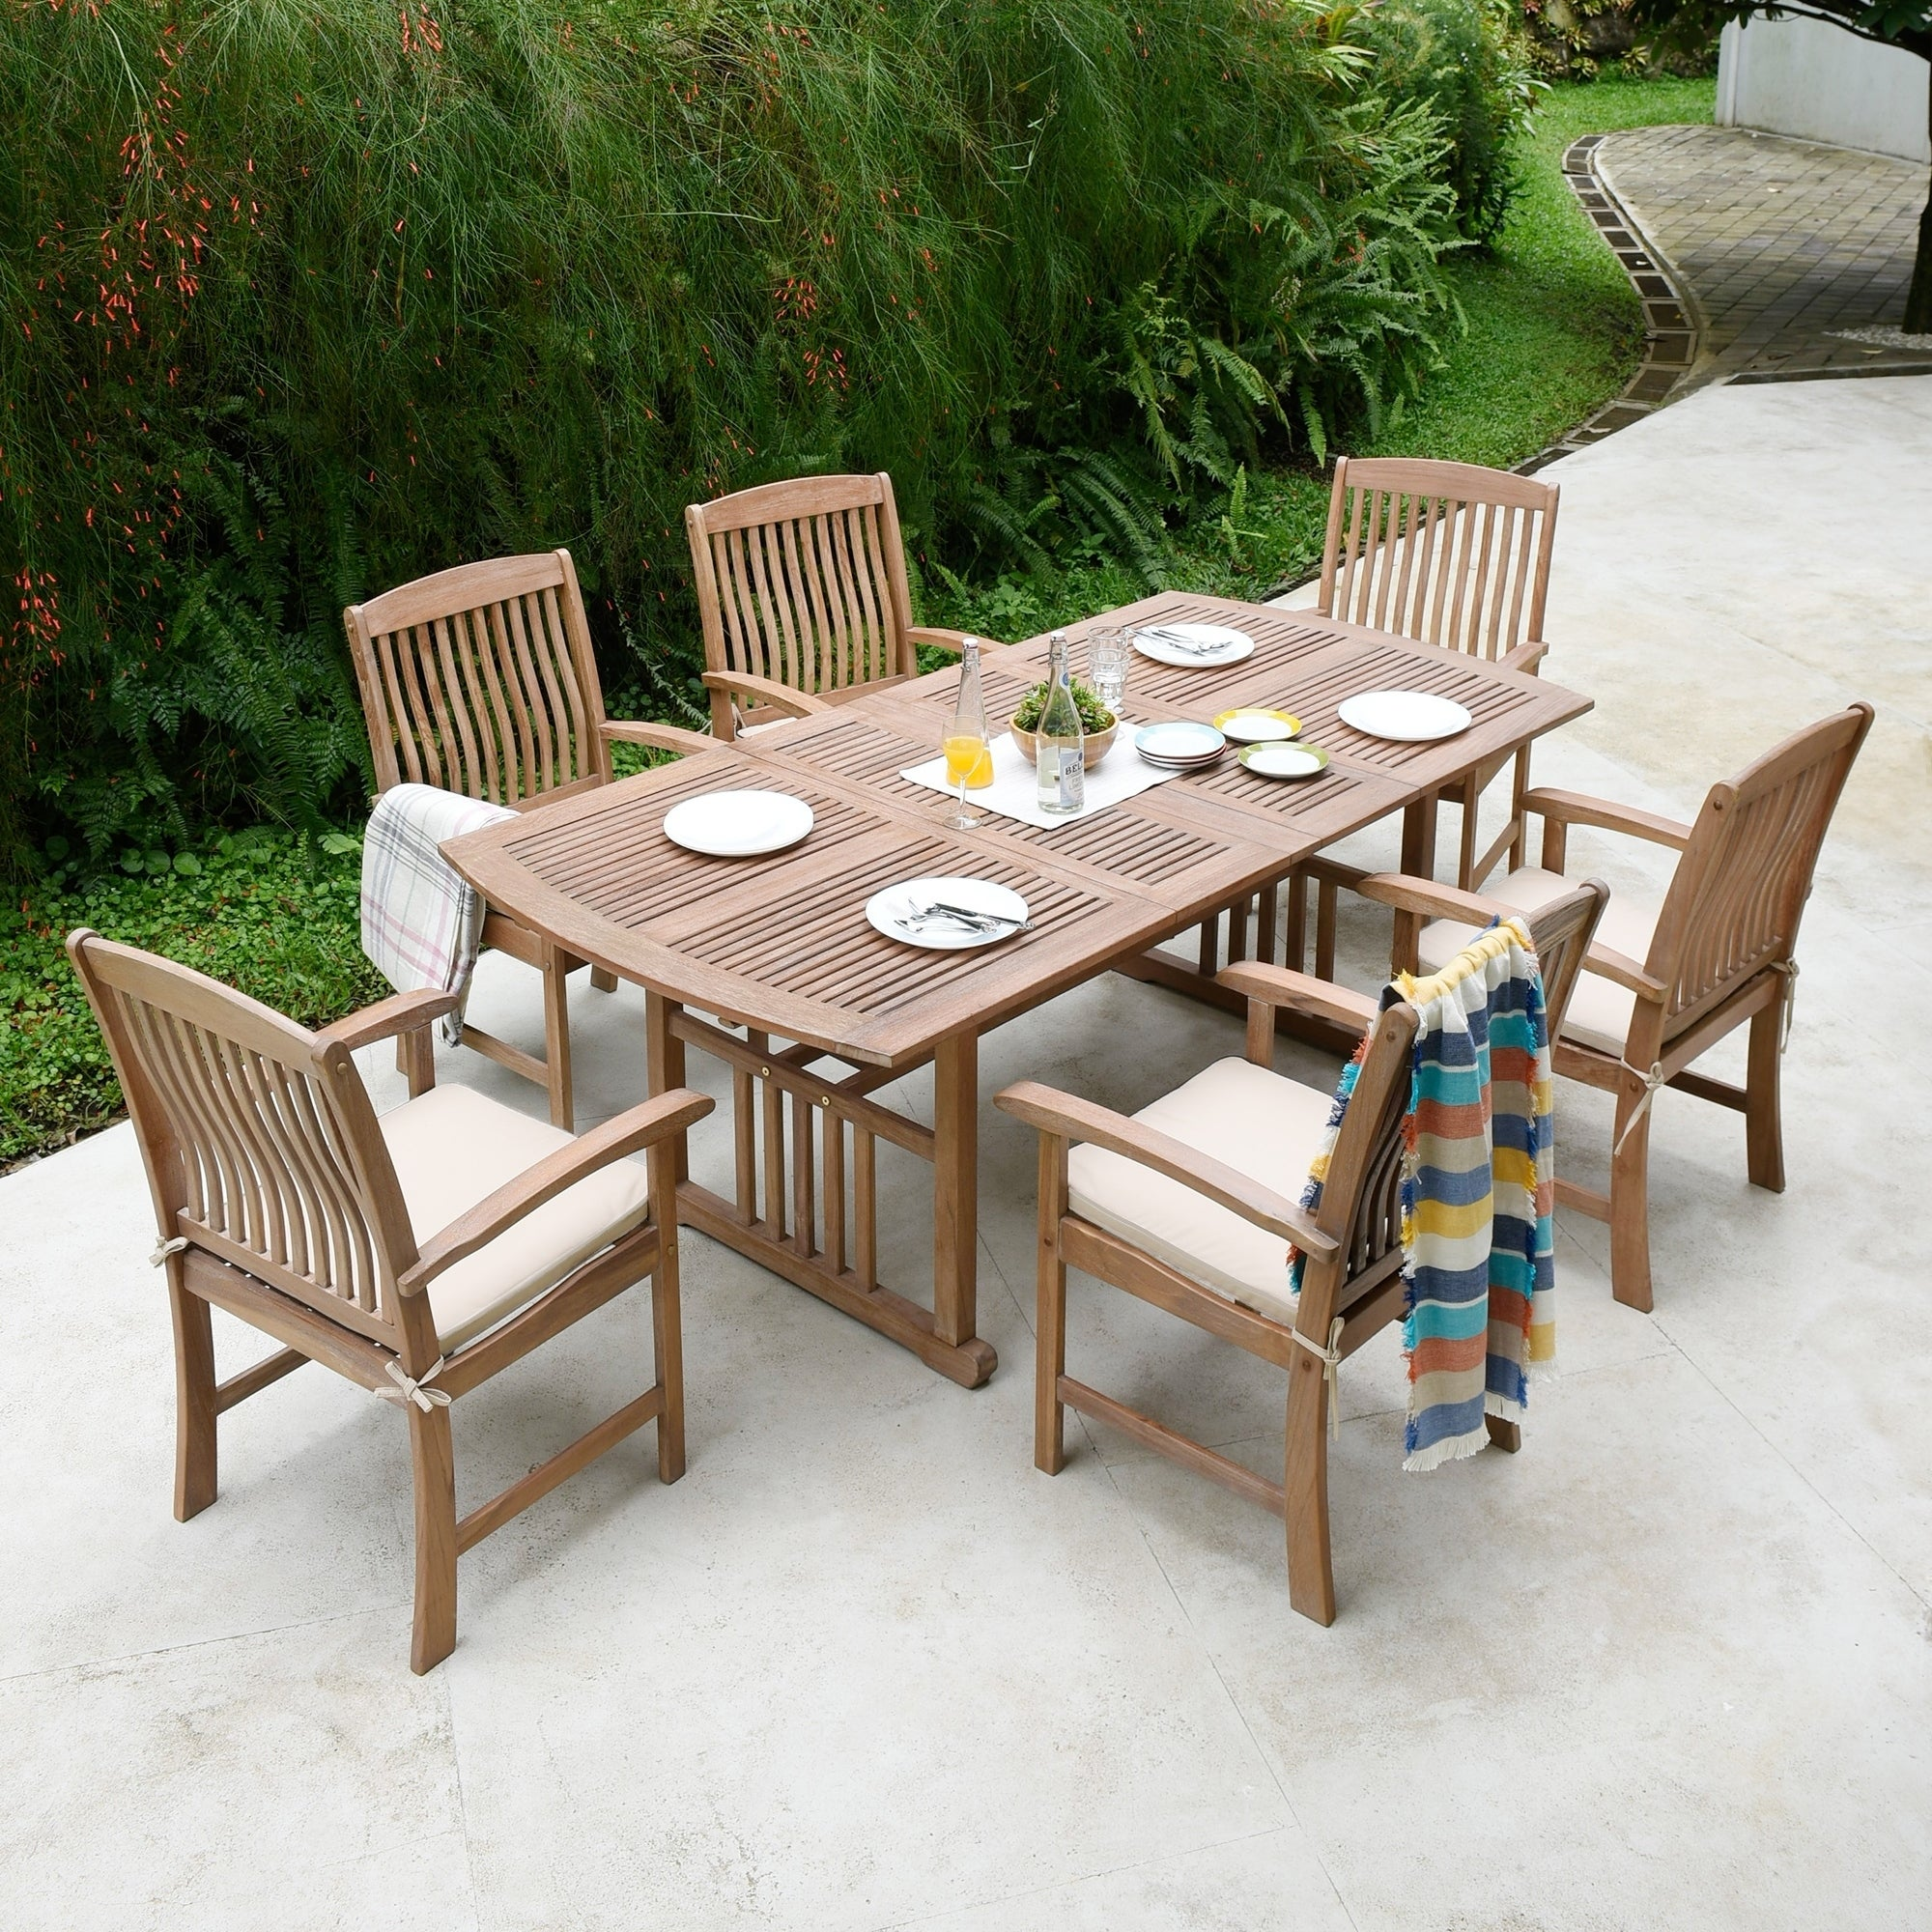 Shop Chignik Casual 7 Piece Teak Patio Extendable Dining Set By Havenside Home Overstock 27639314